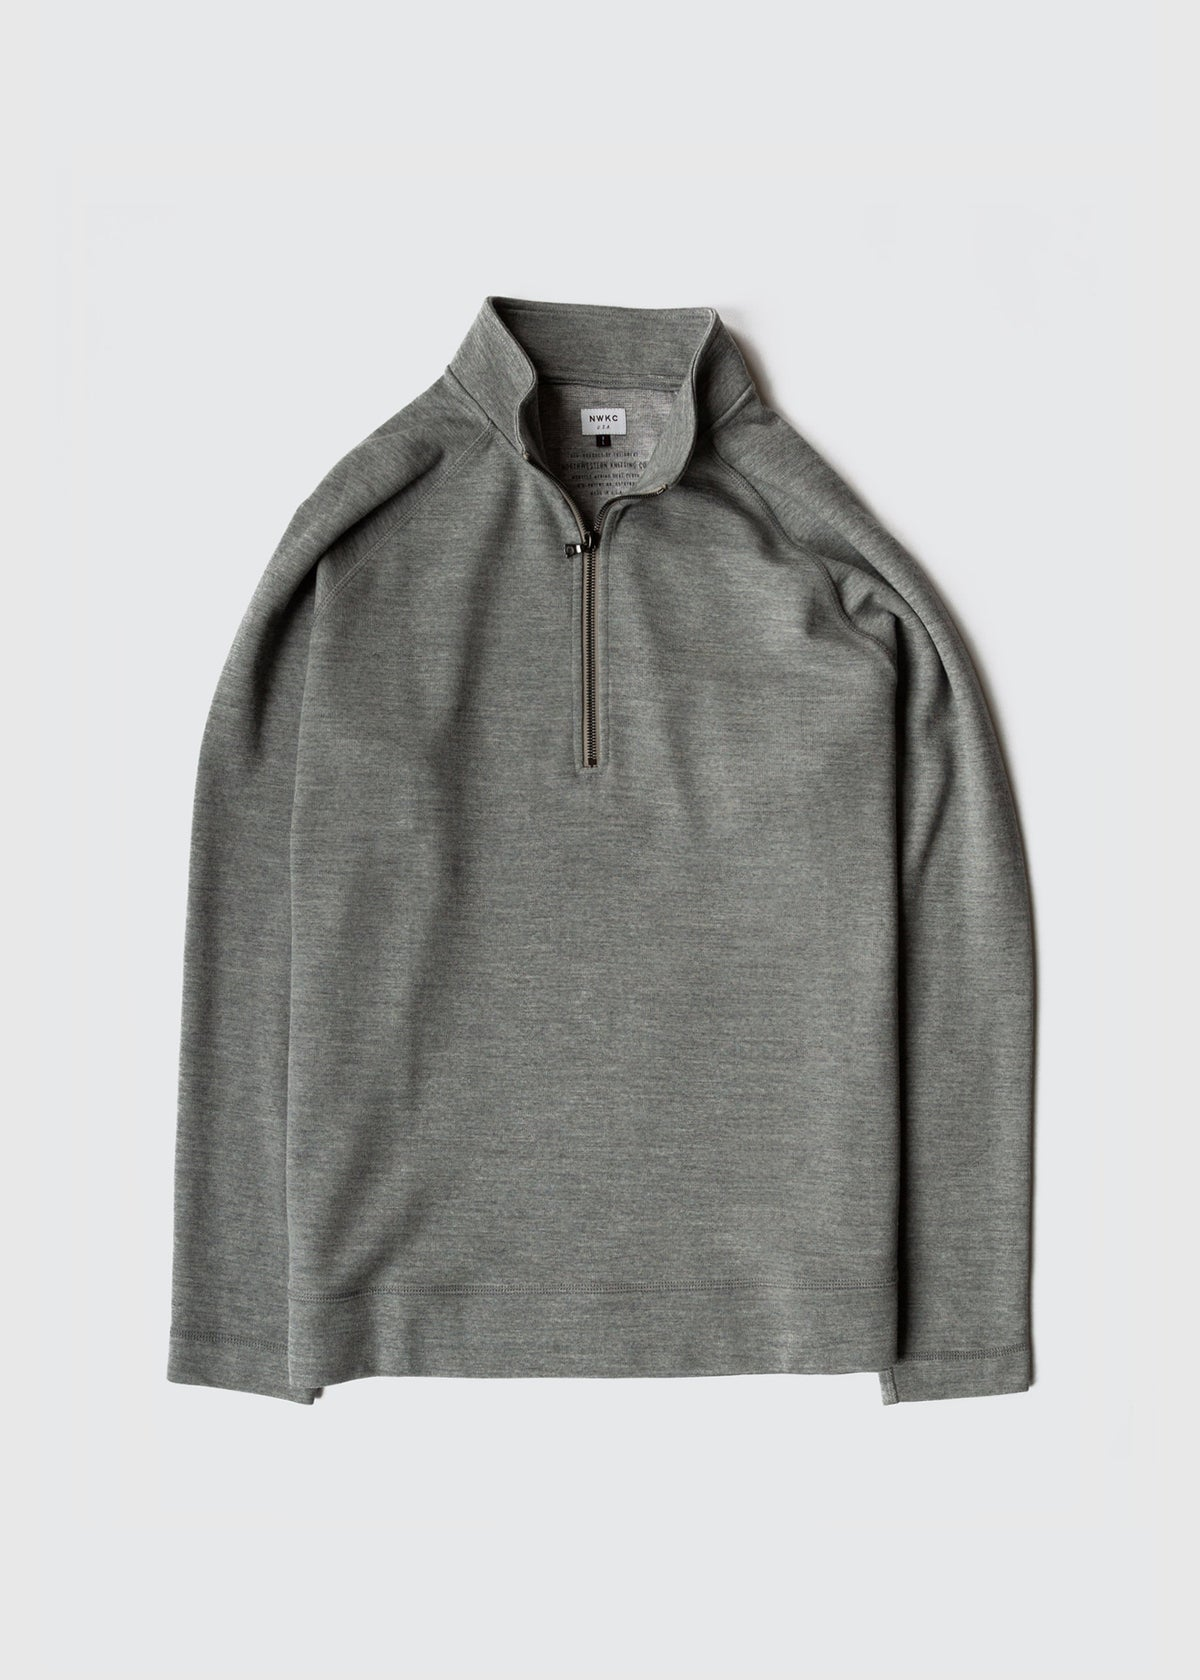 008 - 1/3 ZIP - FEATHER GRAY - Wilson & Willy's - MPLS Neighbor Goods